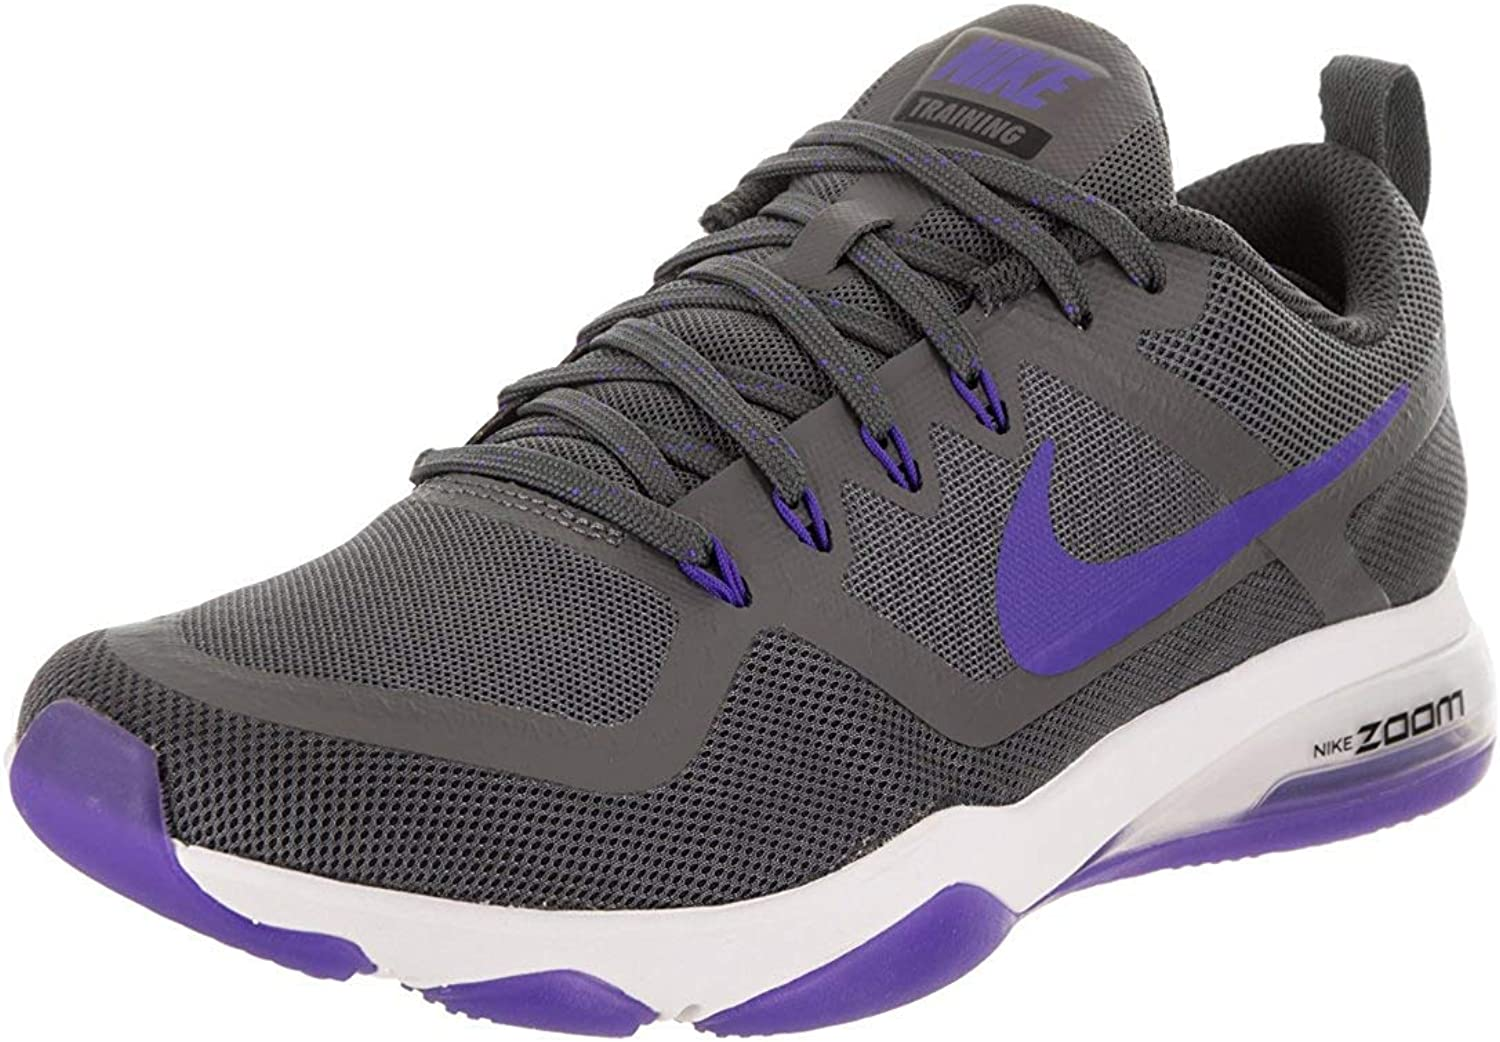 Nike Women's Air Zoom Fitness Training shoes